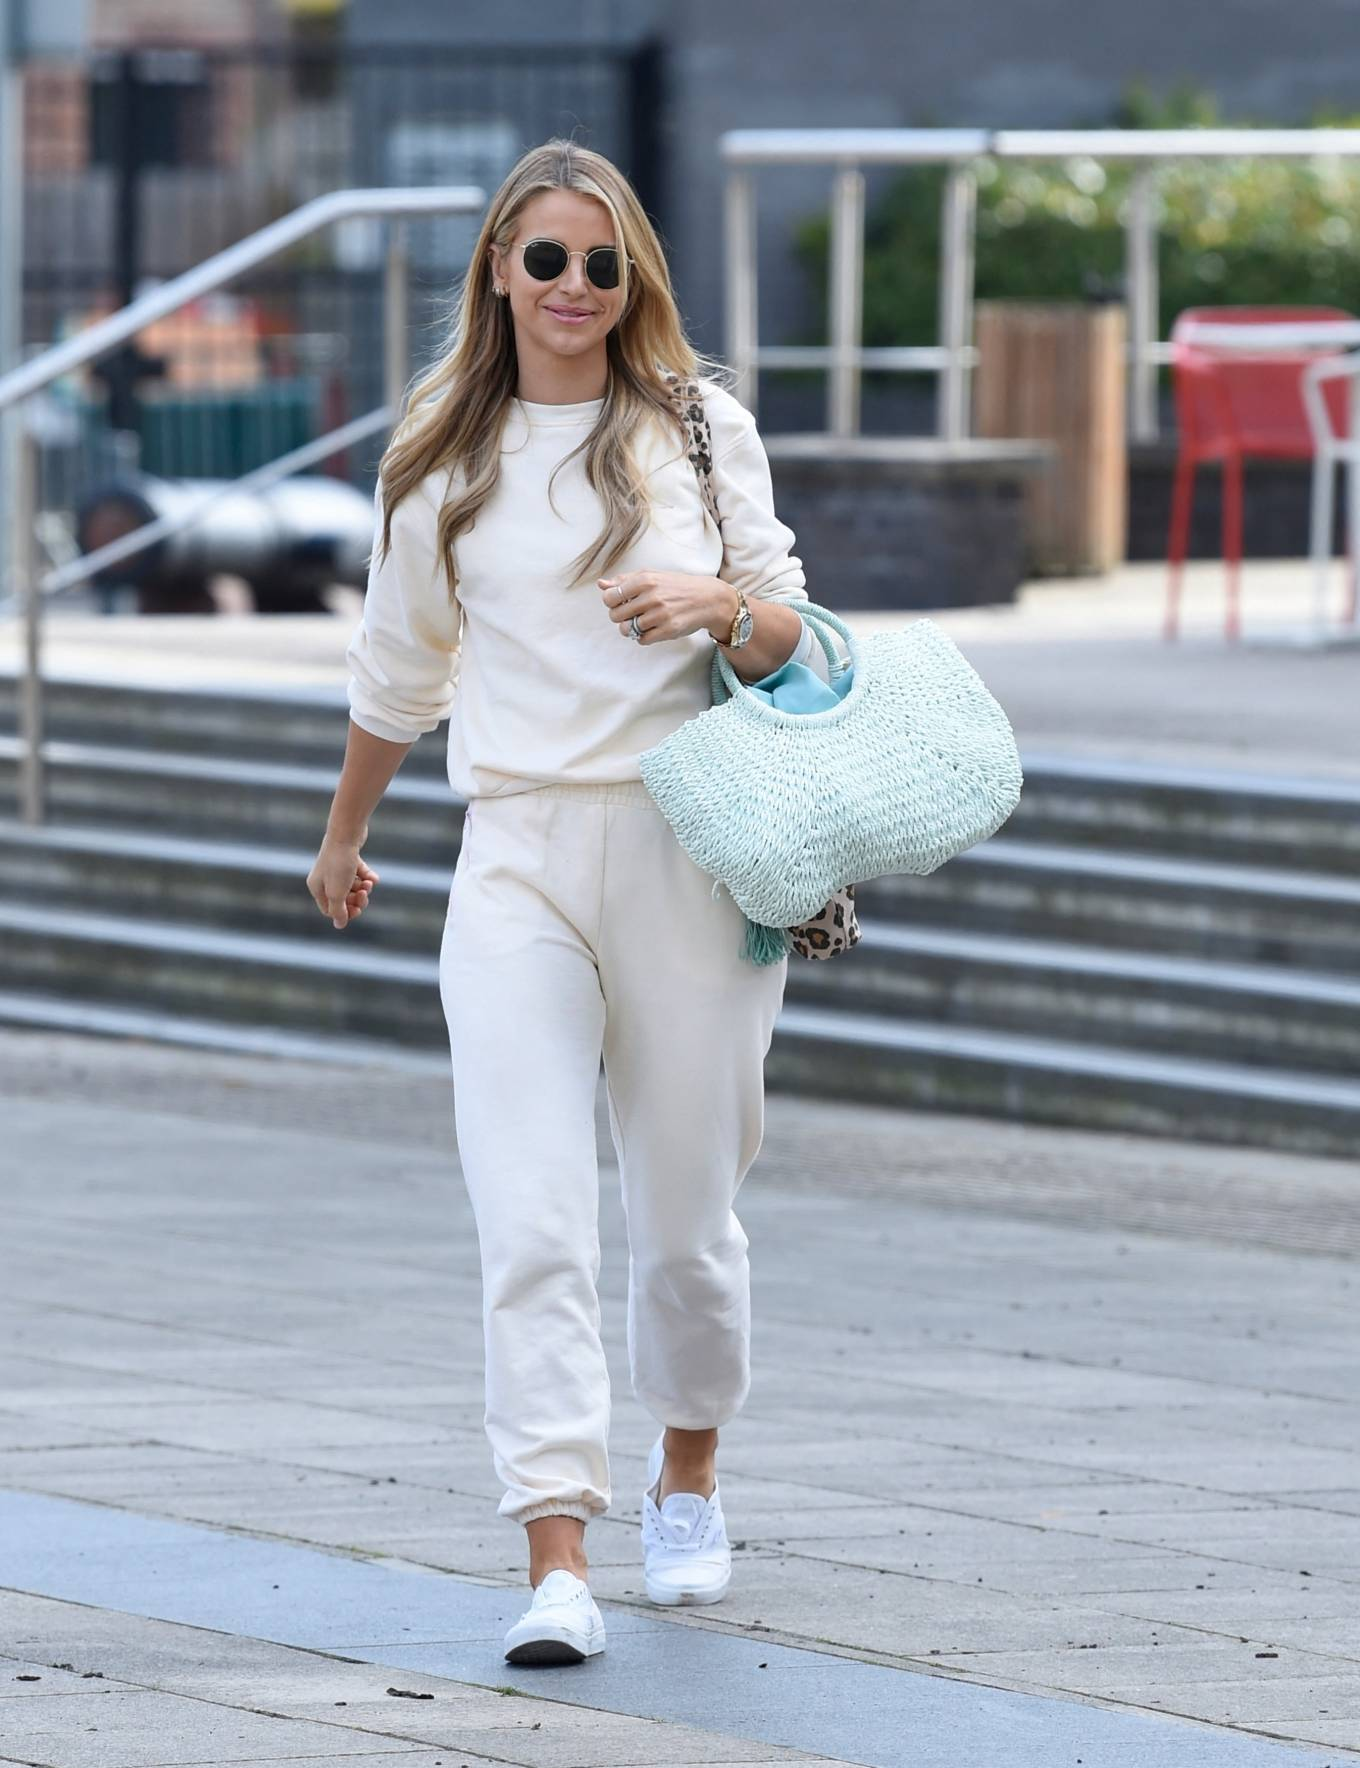 Vogue Williams - Looking adorable at Heart radio in London